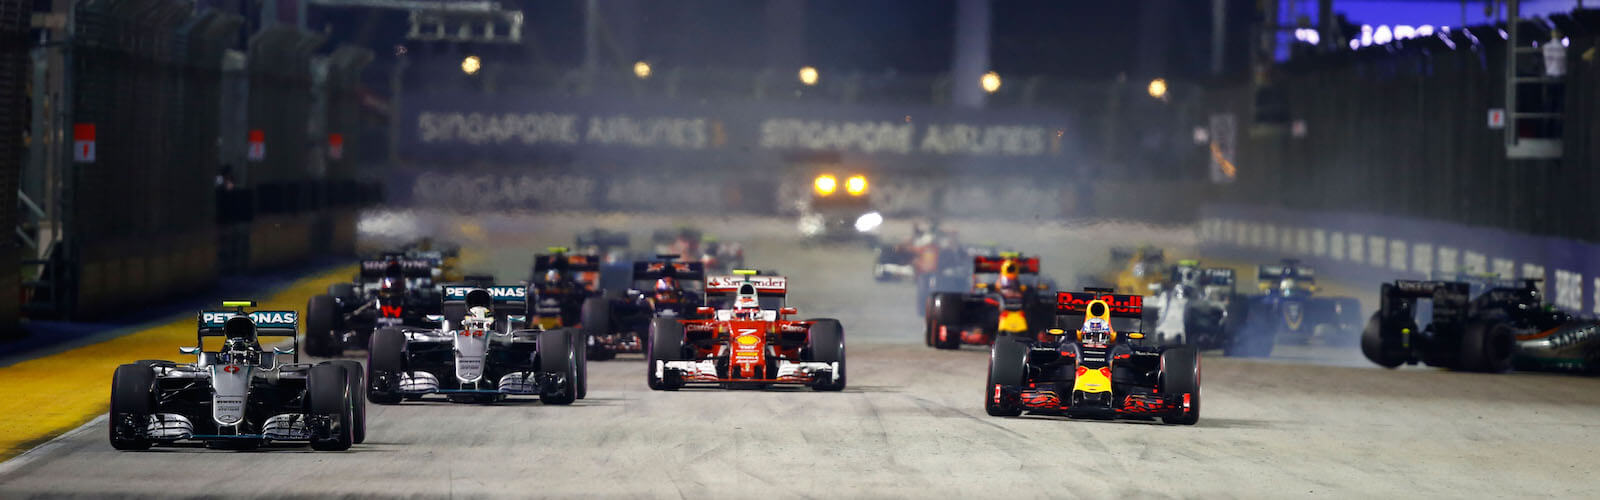 1.singapore-f1-paddock-club